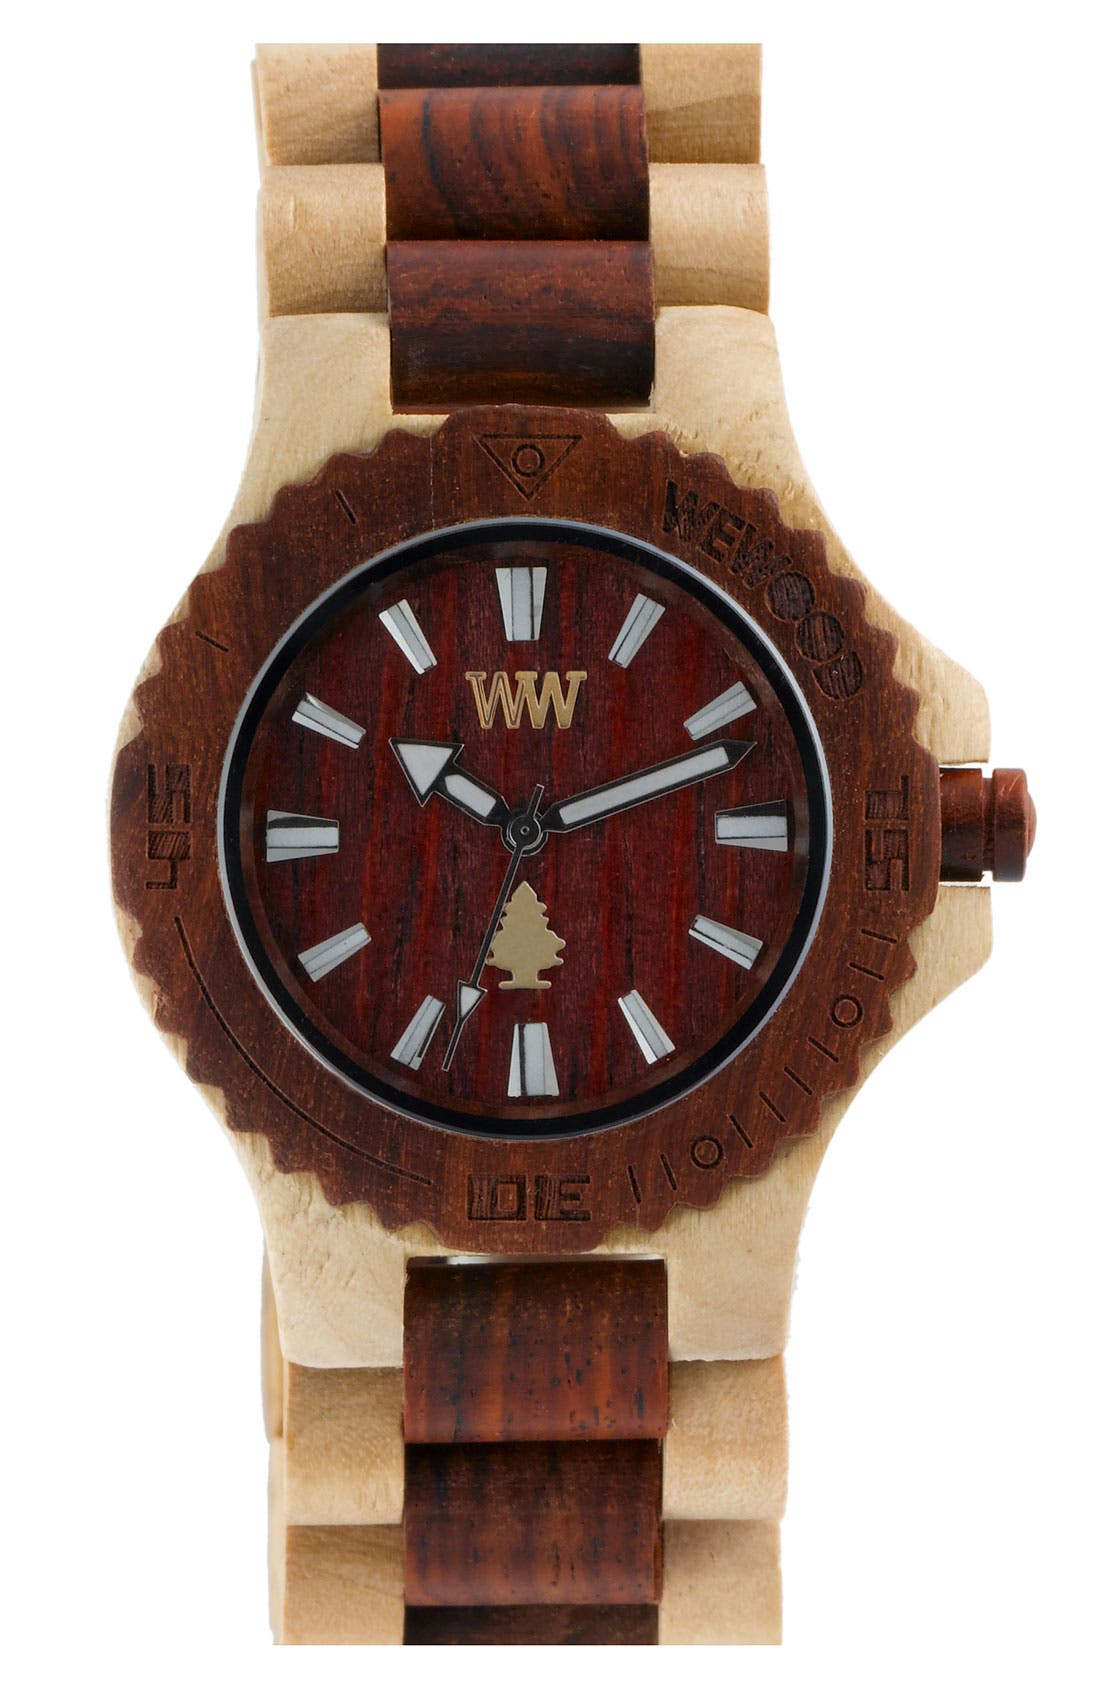 Main Image - WEWOOD 'Date' Wood Watch